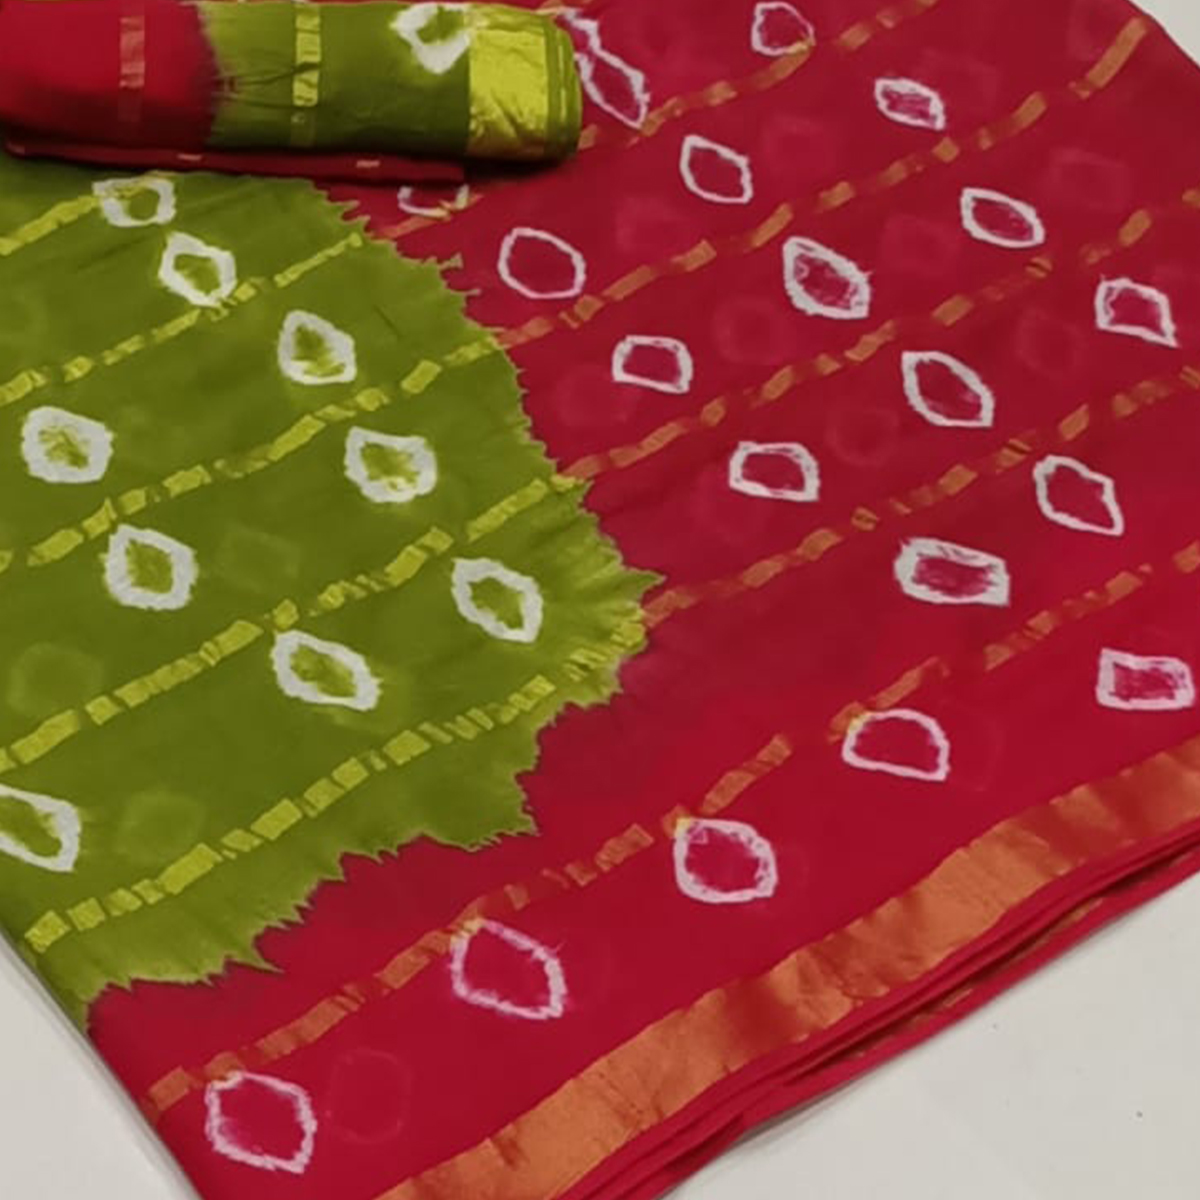 Flattering Olive Green-Red Colored Party Wear Bandhani Print Cotton Saree